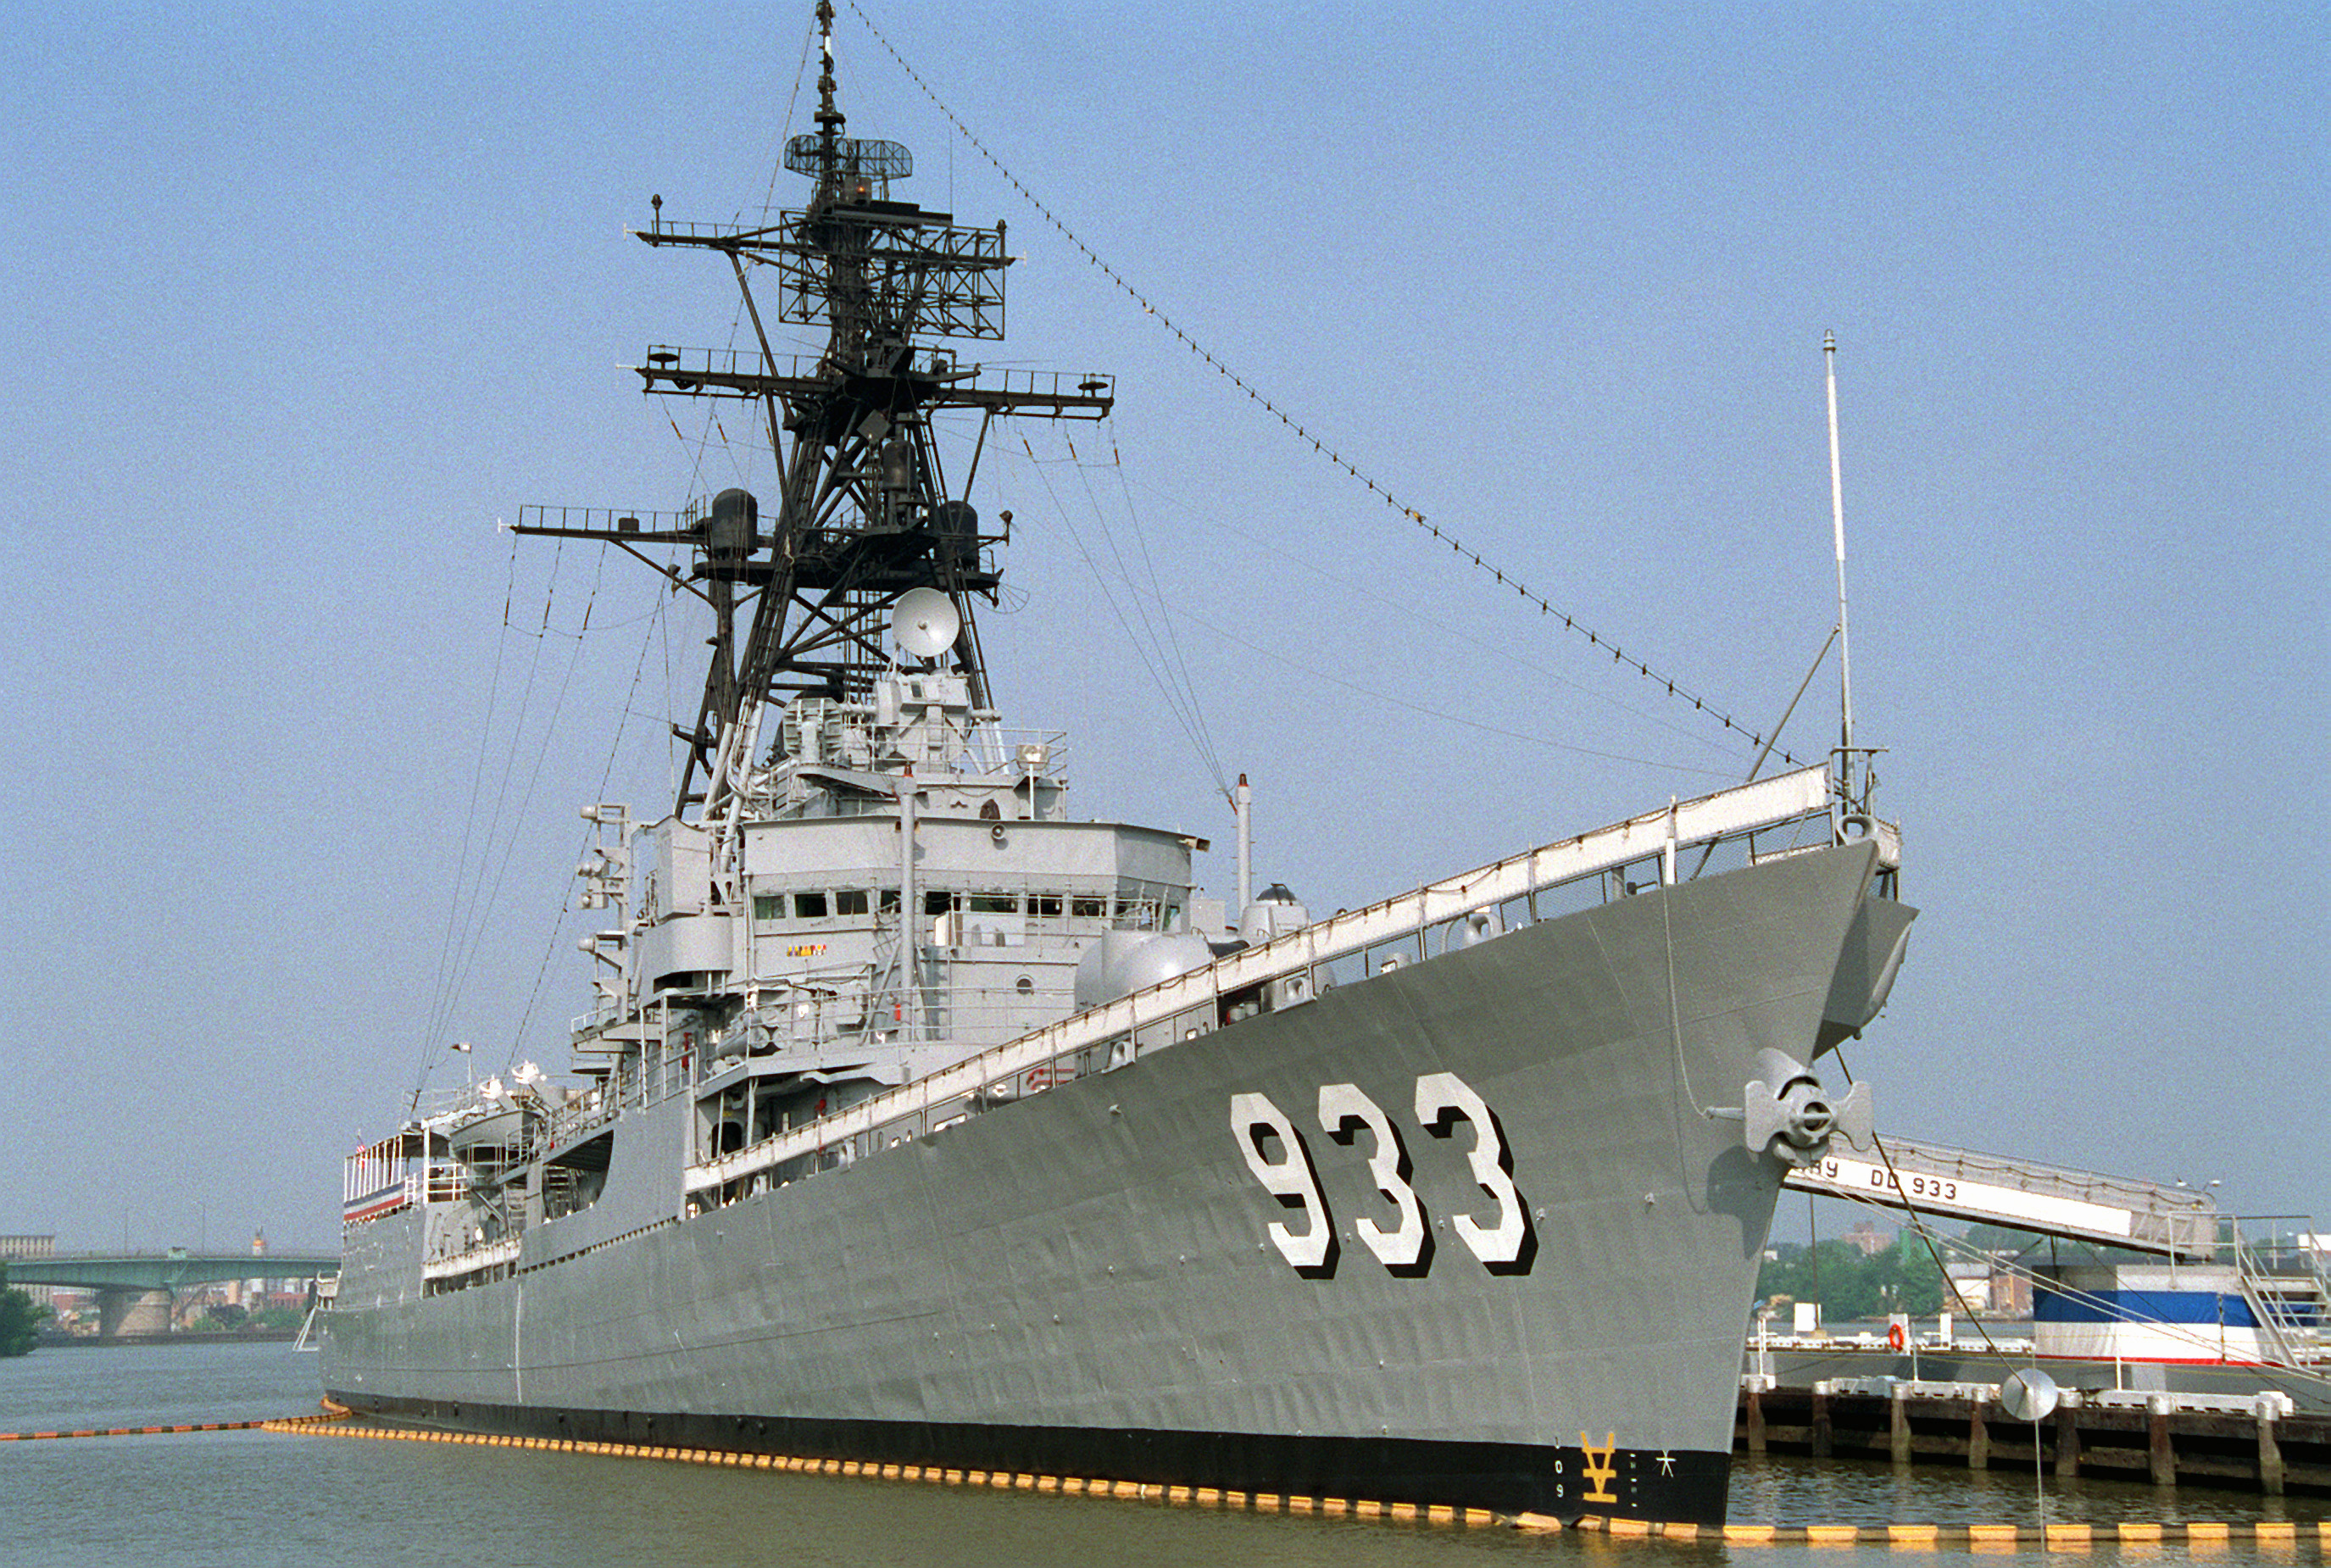 File:USS Barry (DD-933) at Washington Navy Yard in 1994.